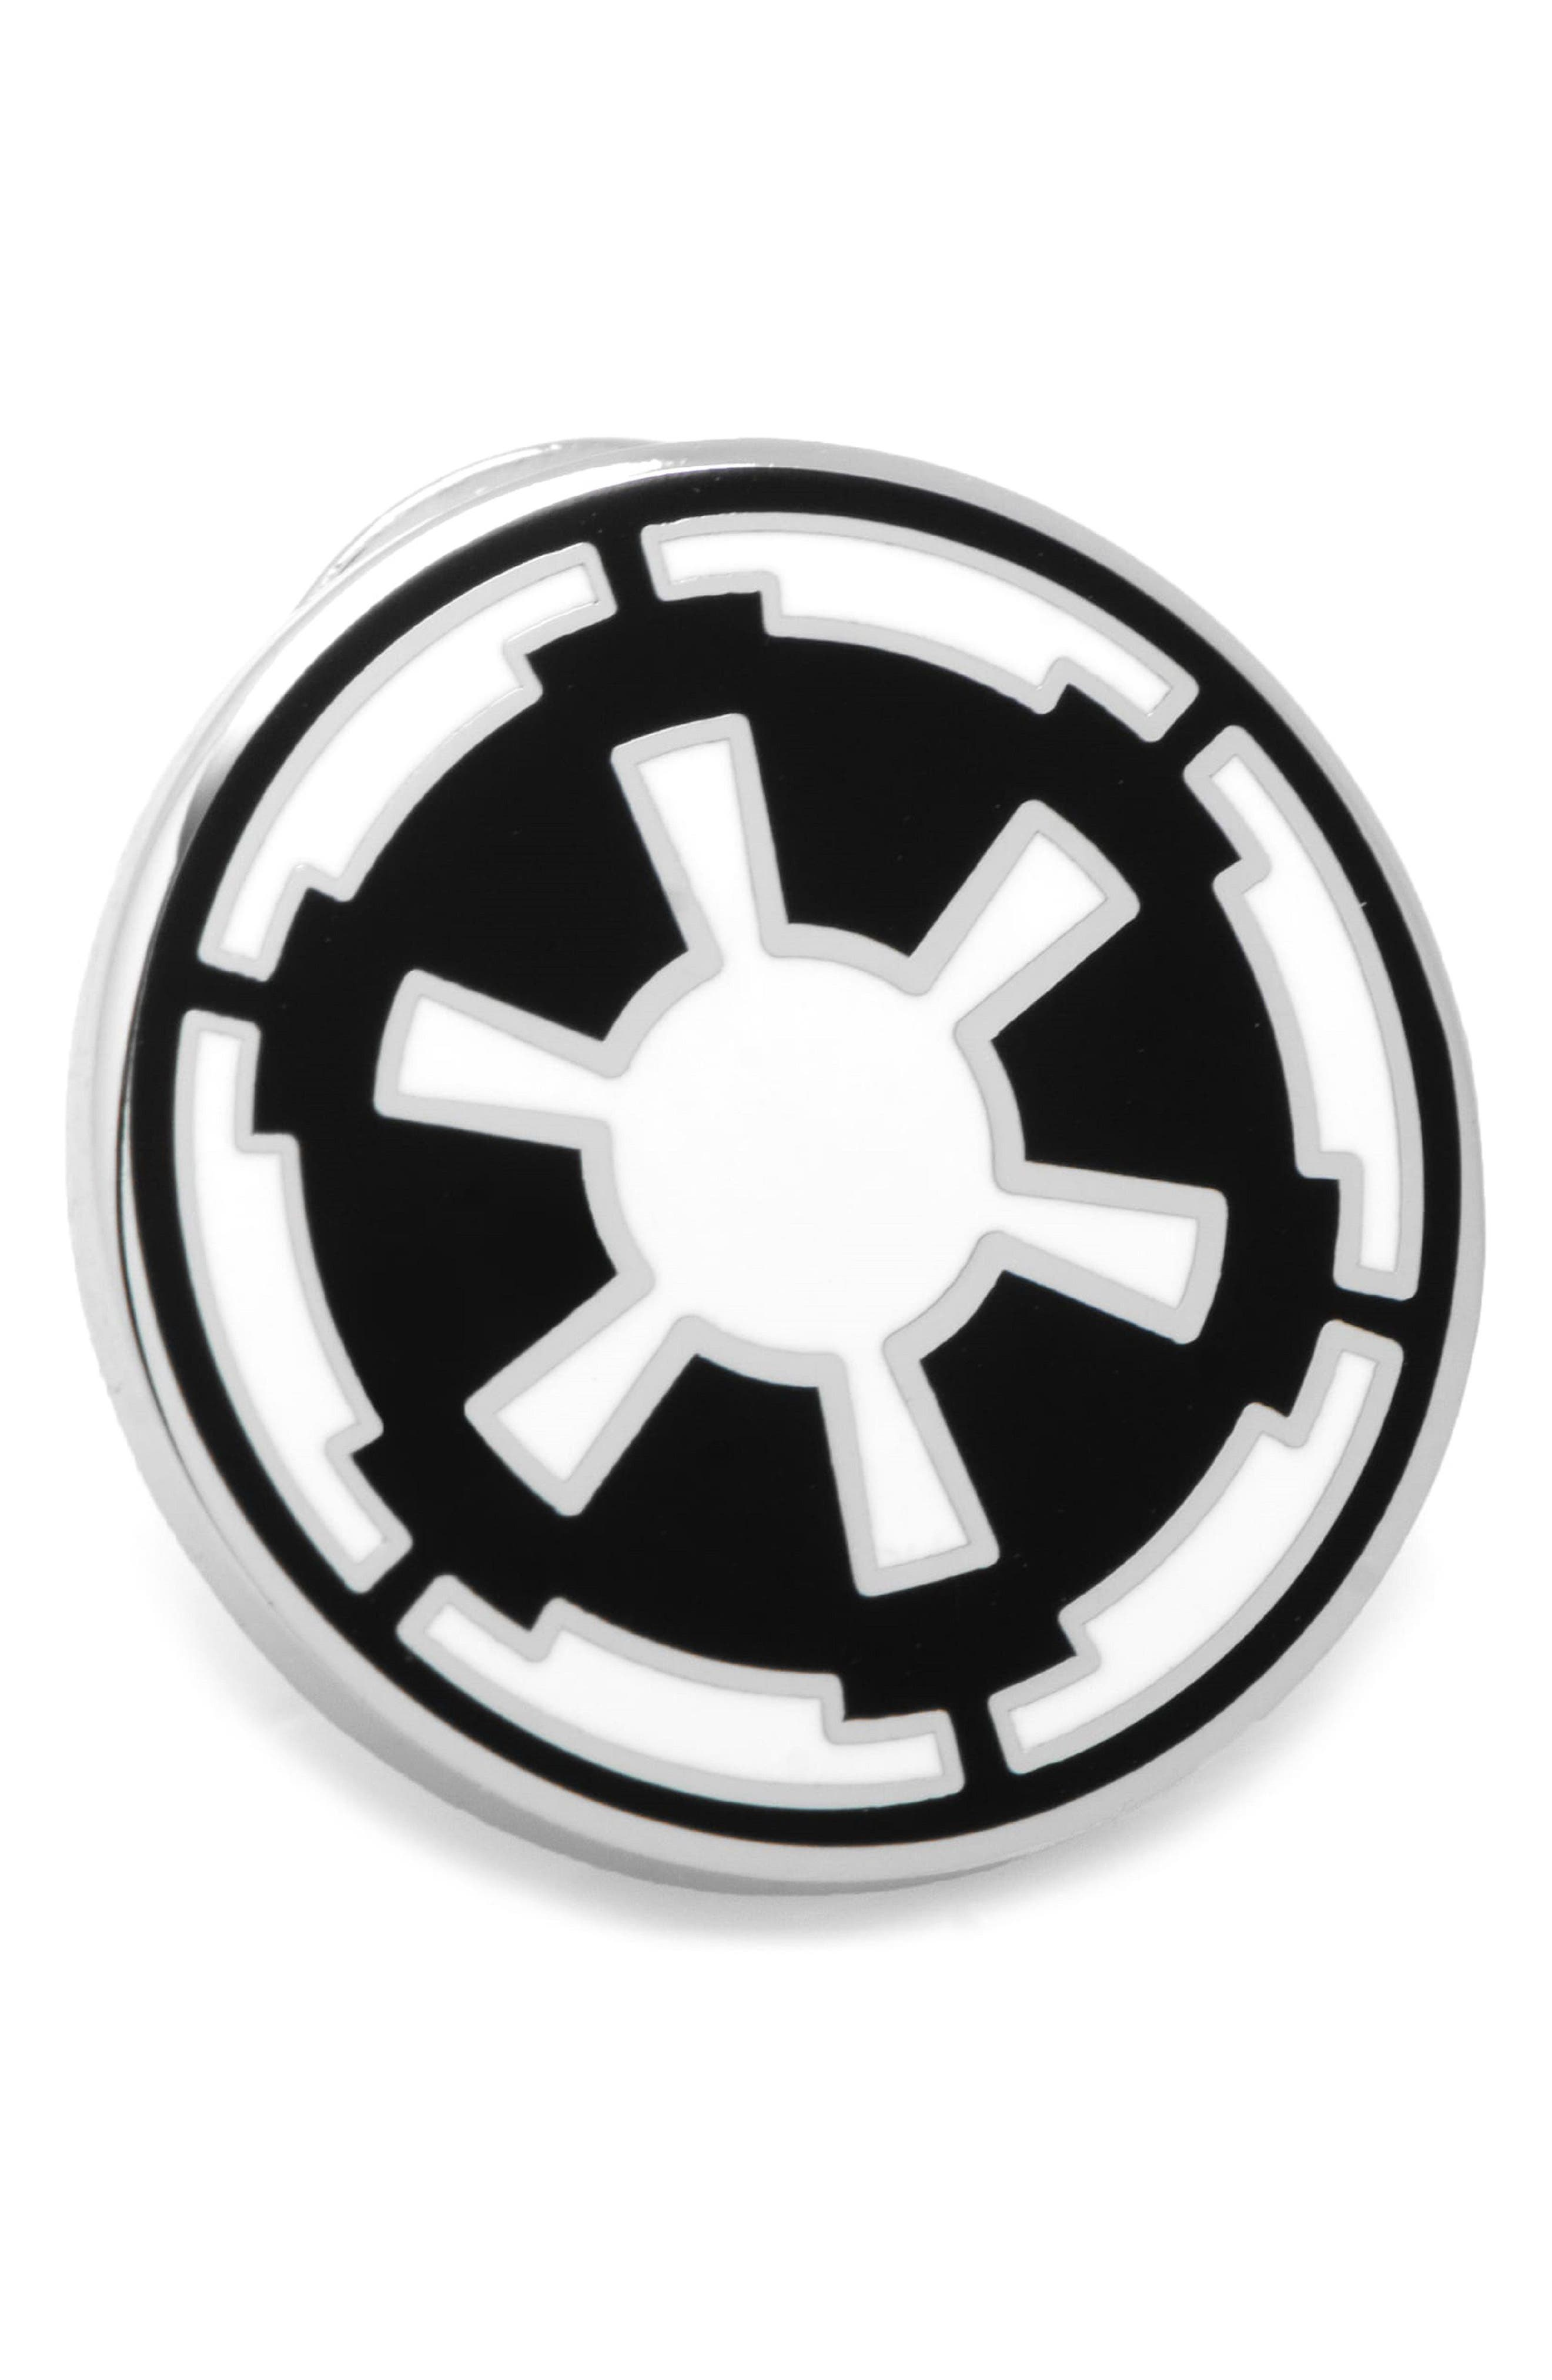 Star Wars<sup>™</sup> - Imperial Lapel Pin,                         Main,                         color, Silver